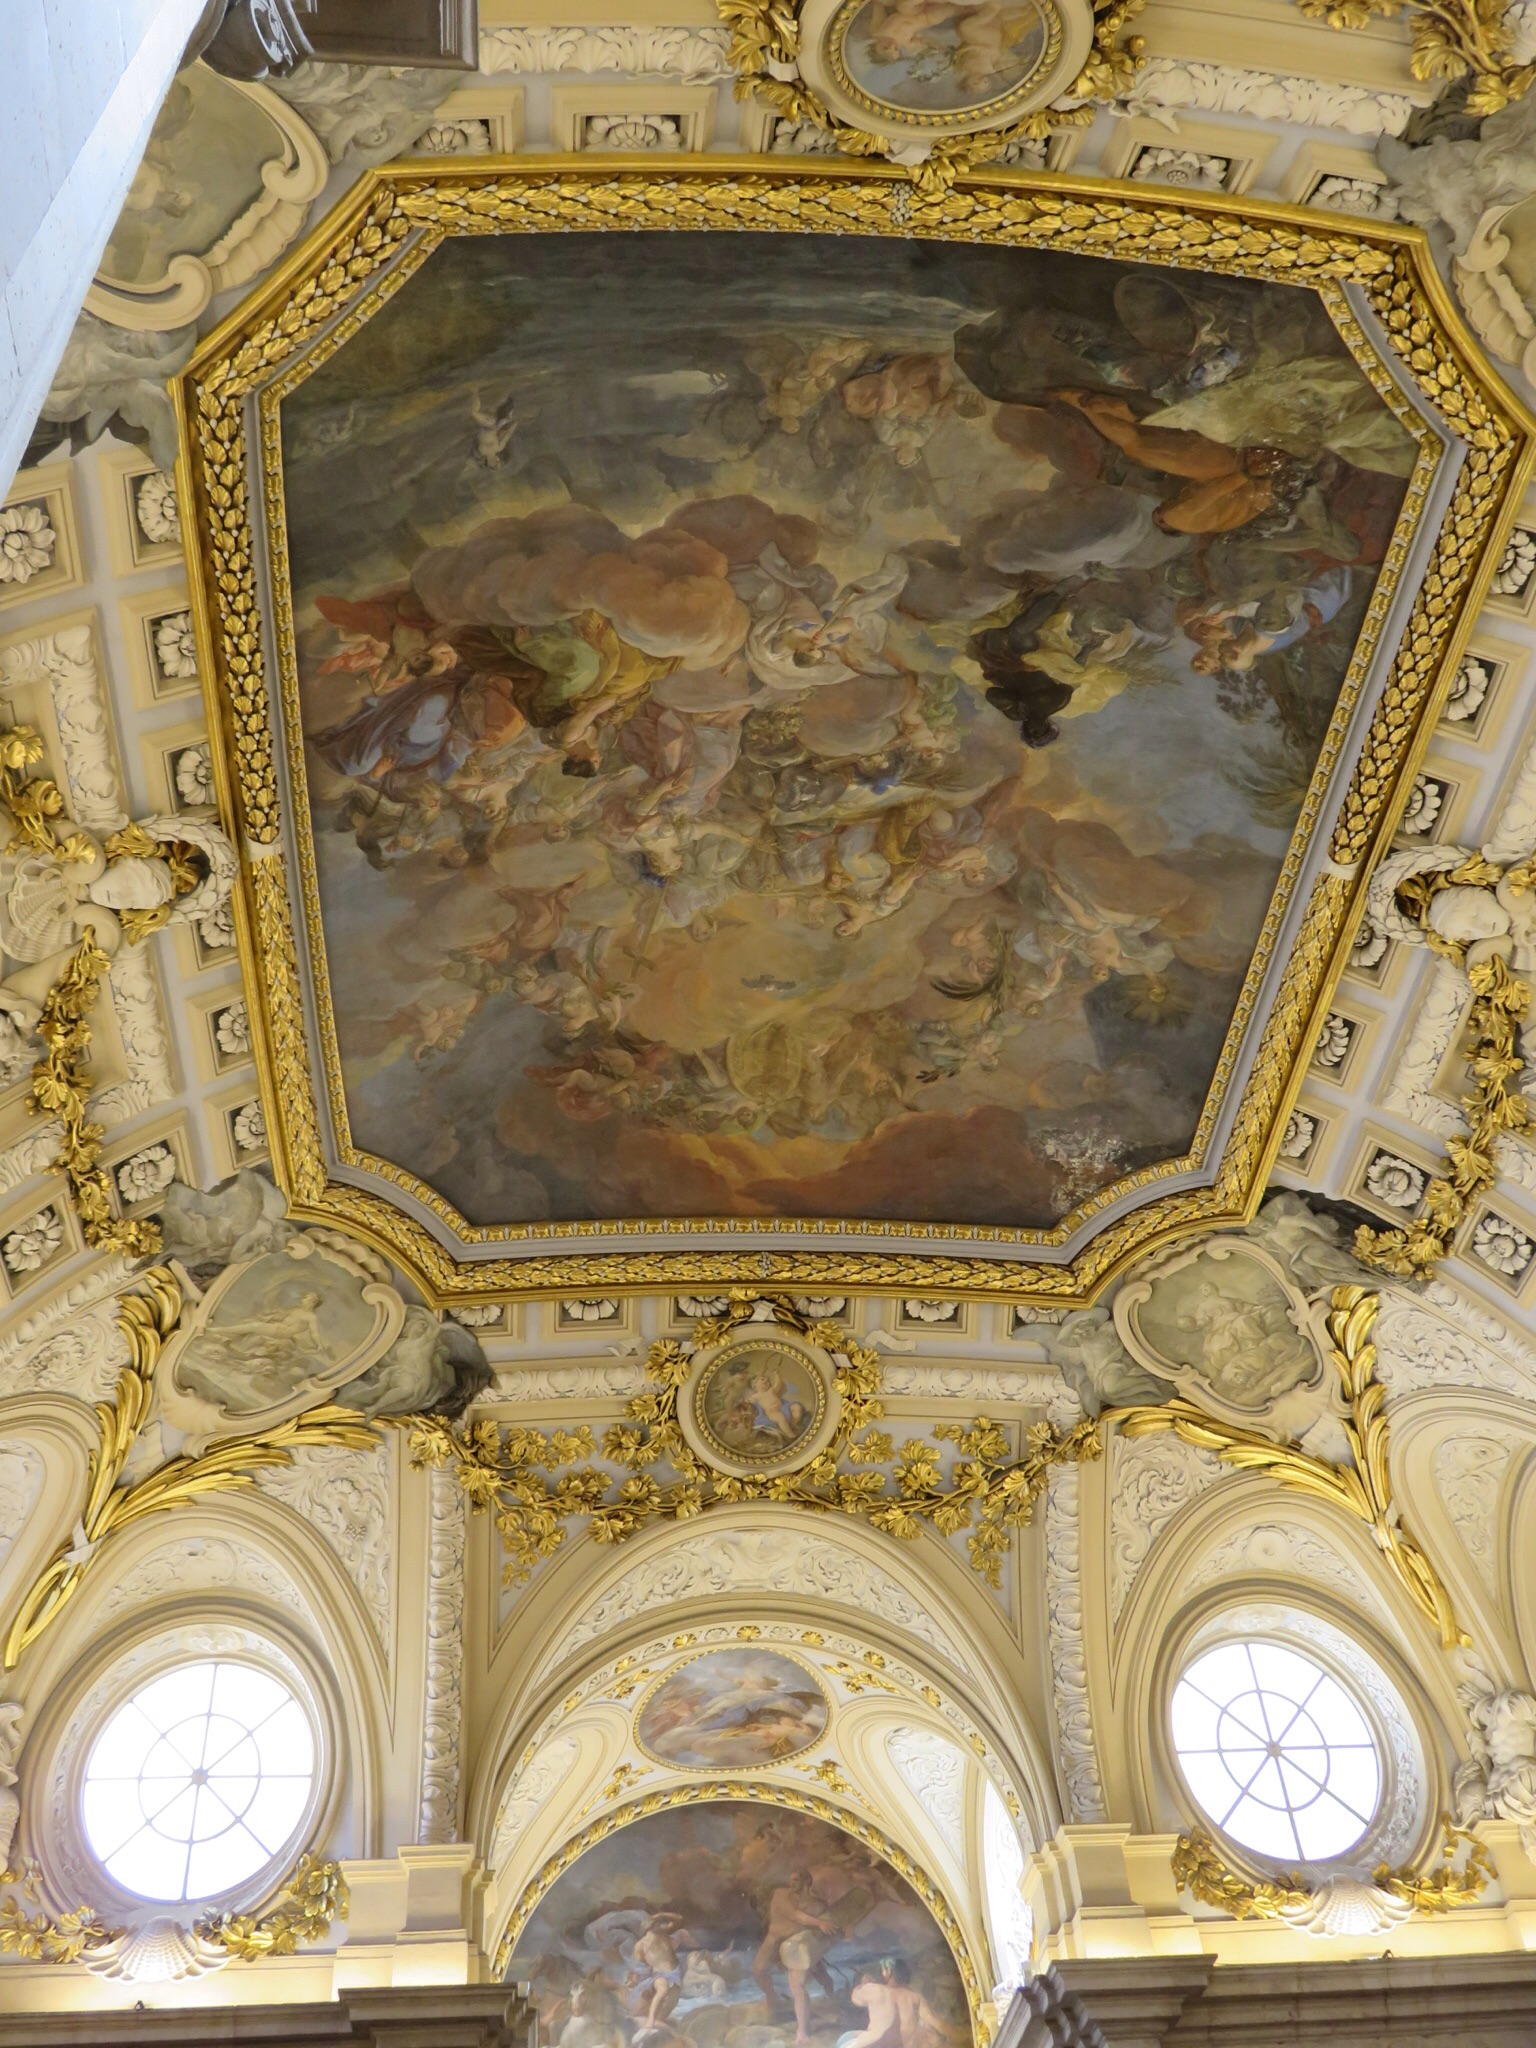 Last area where photographs were allowed - ceiling frescoe of the Spanish King surrounded by female virtues